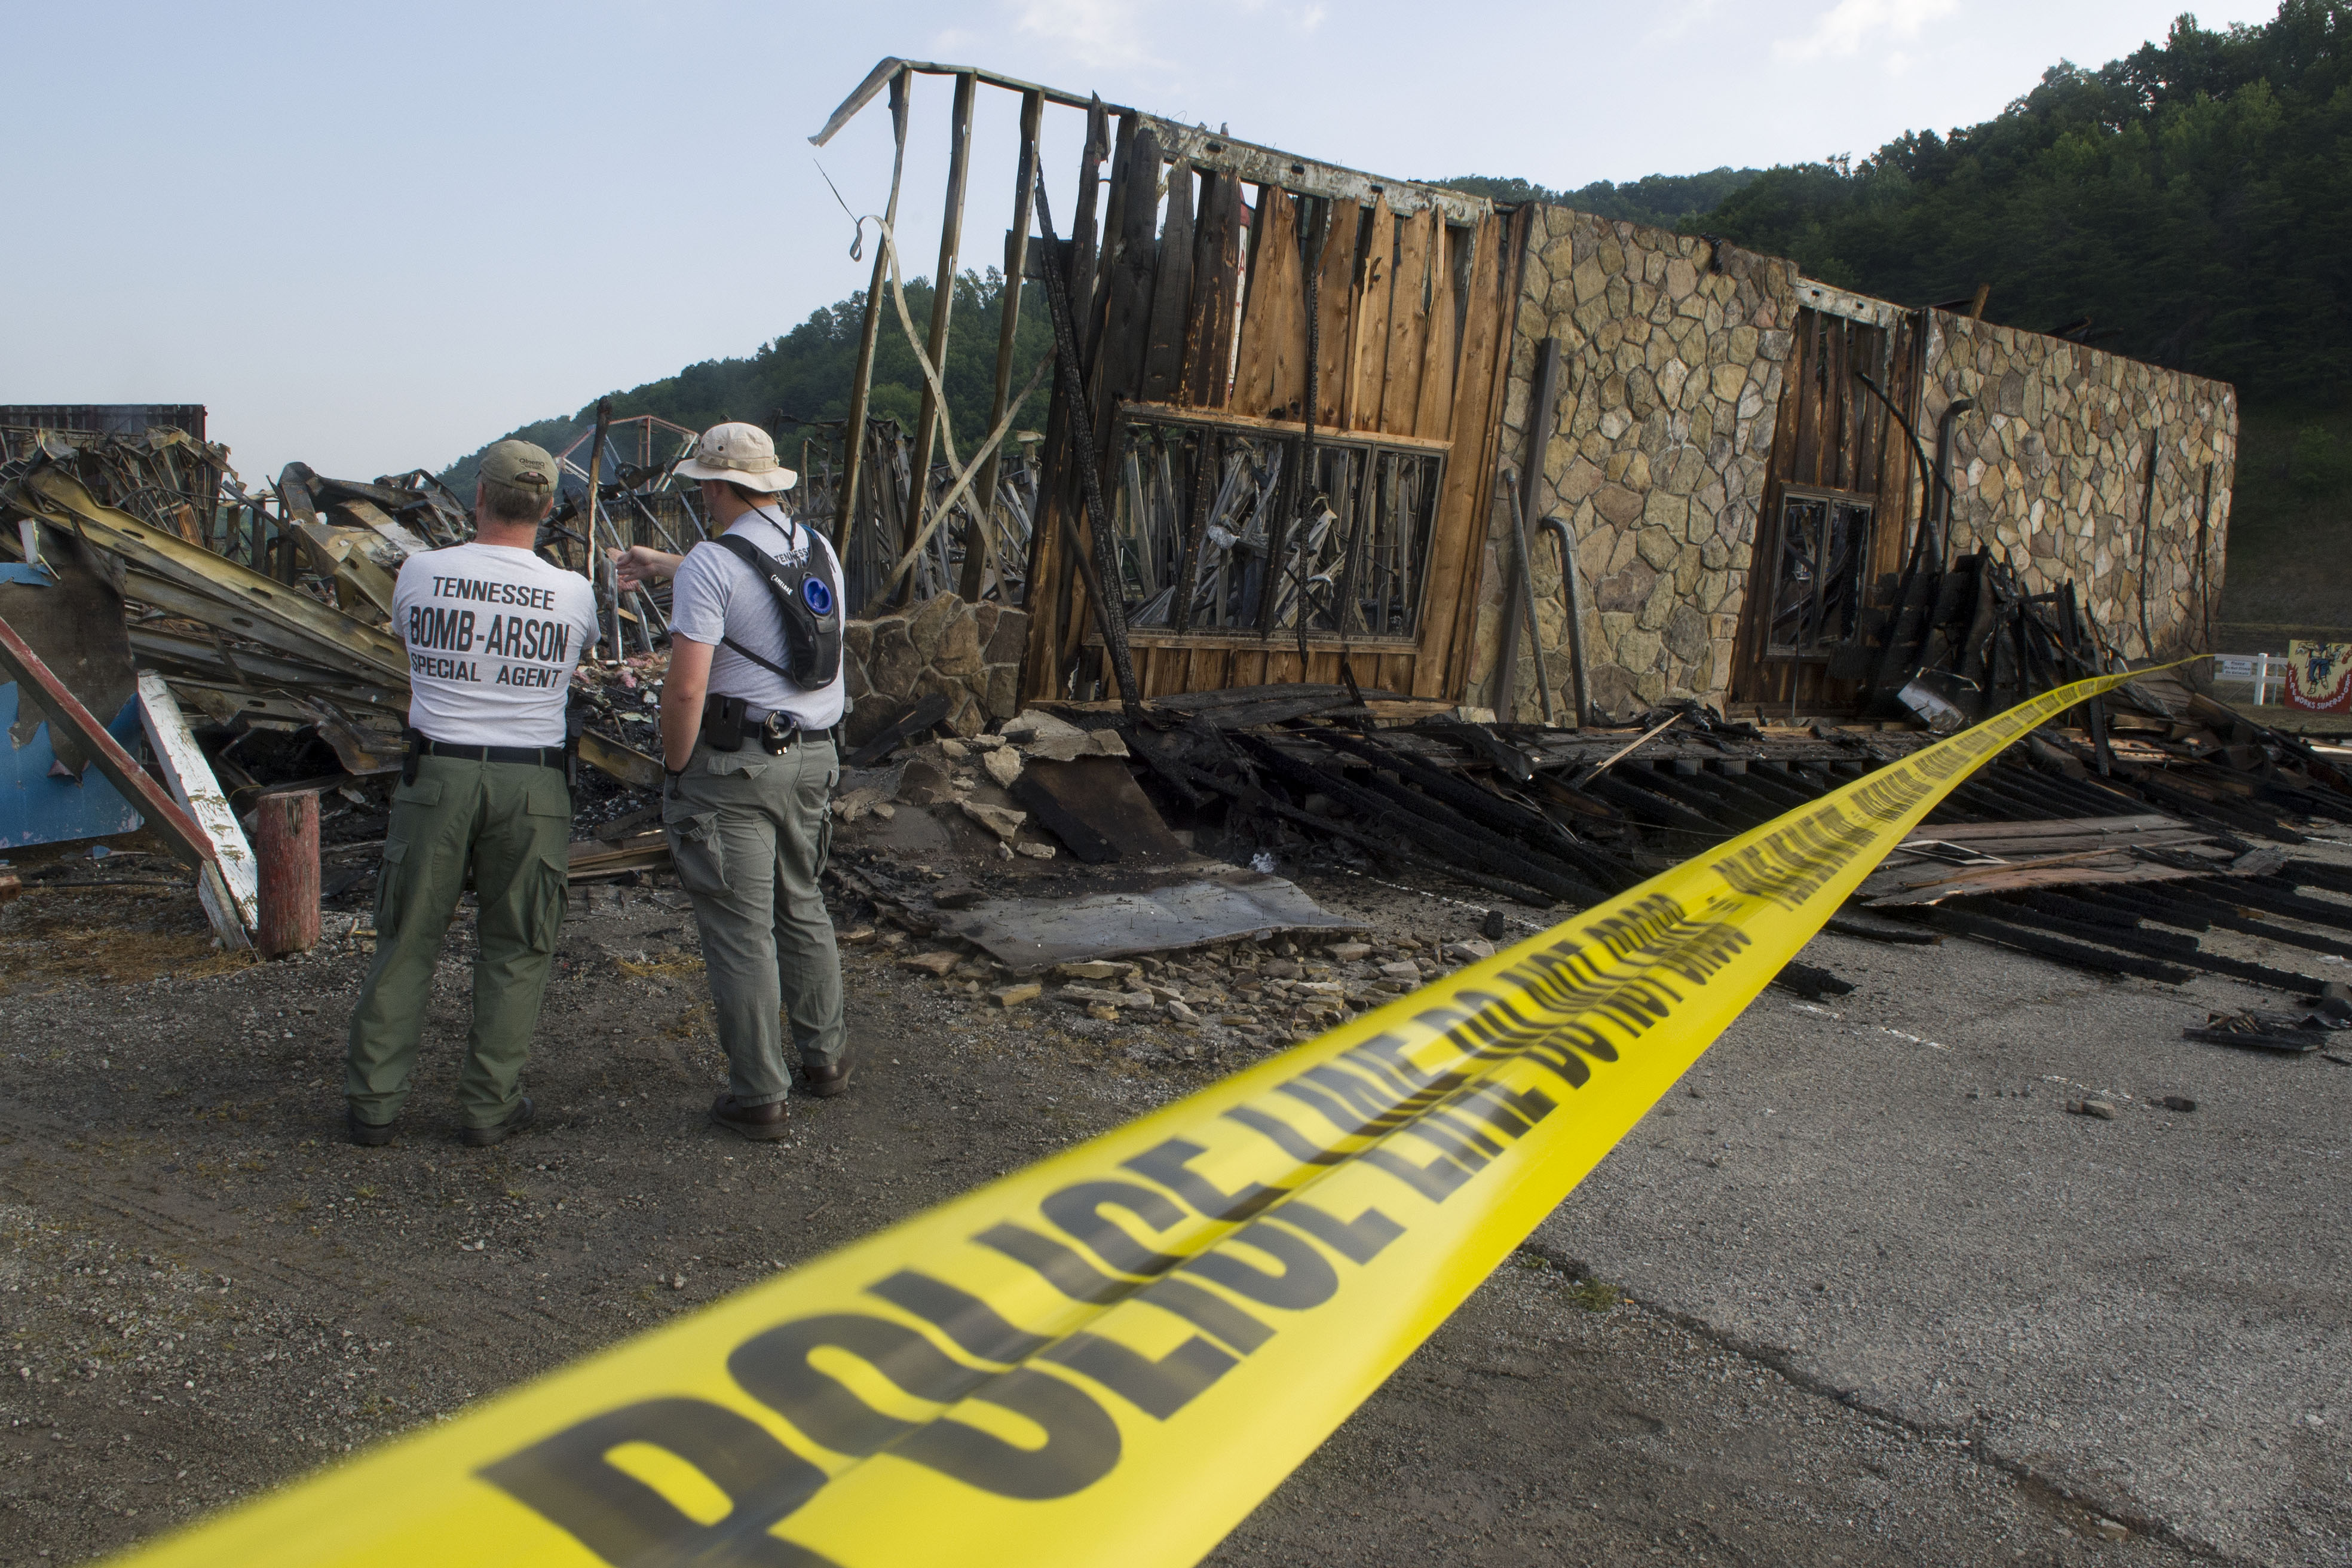 Tennessee Bomb and Arson Special Agents Don Cogan, left and Jason Poore survey the destroyed Fireworks Superstore in Caryville, Tenn. on July 7, 2014.